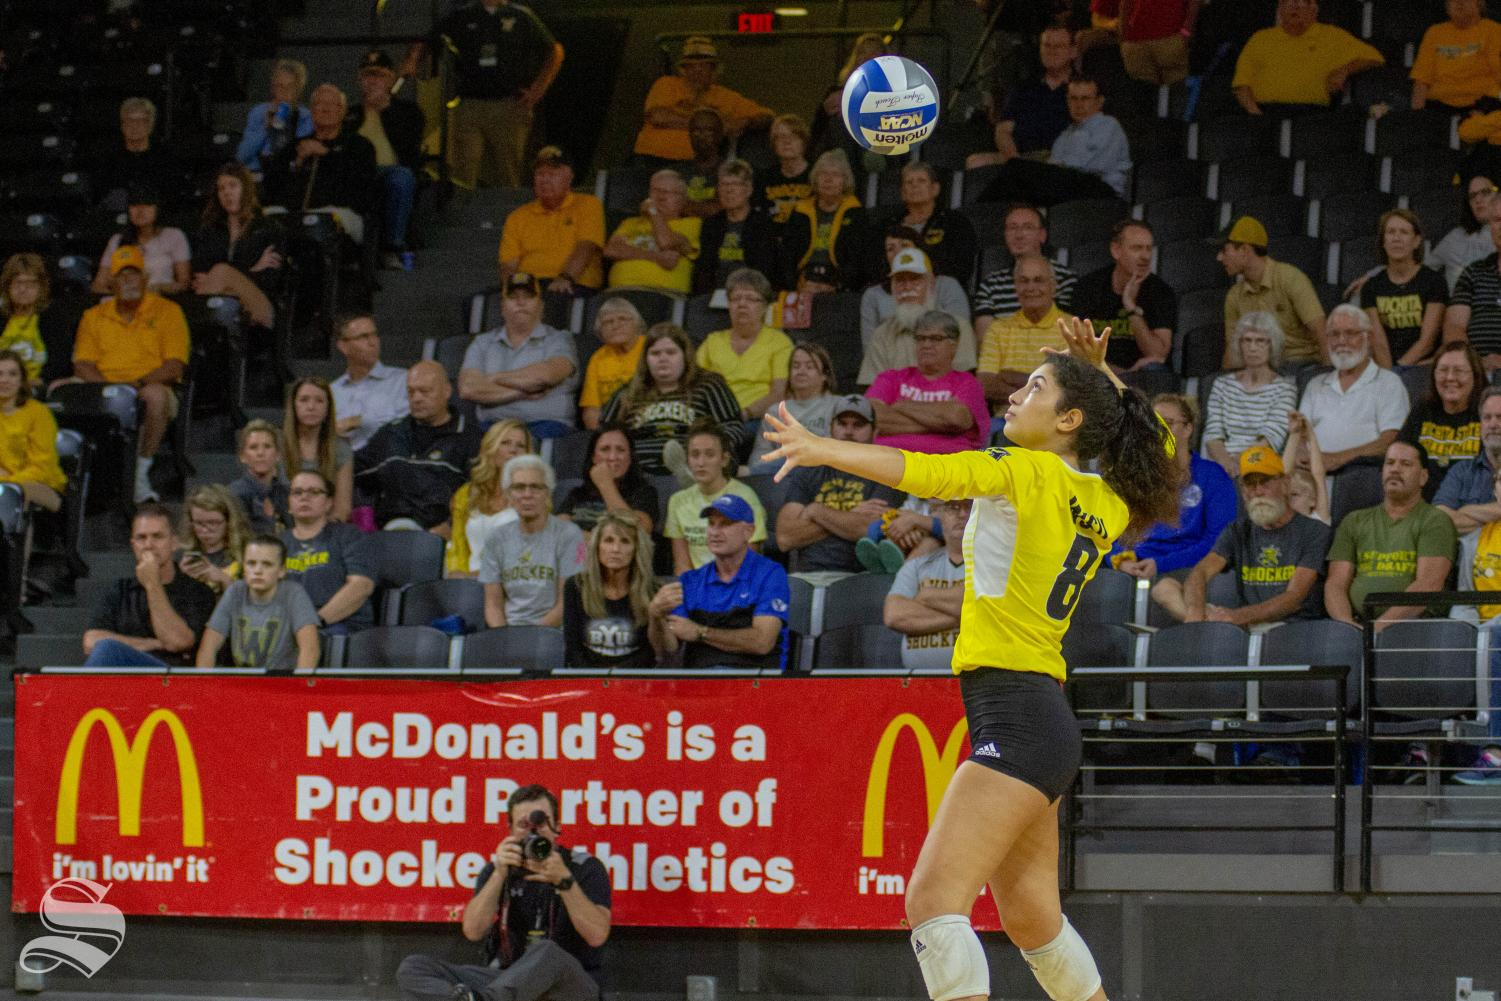 Wichita+State+freshman+Arianna+Arjomand+serves+the+ball+during+the+Shockers%27+home+opener+against+BYU.